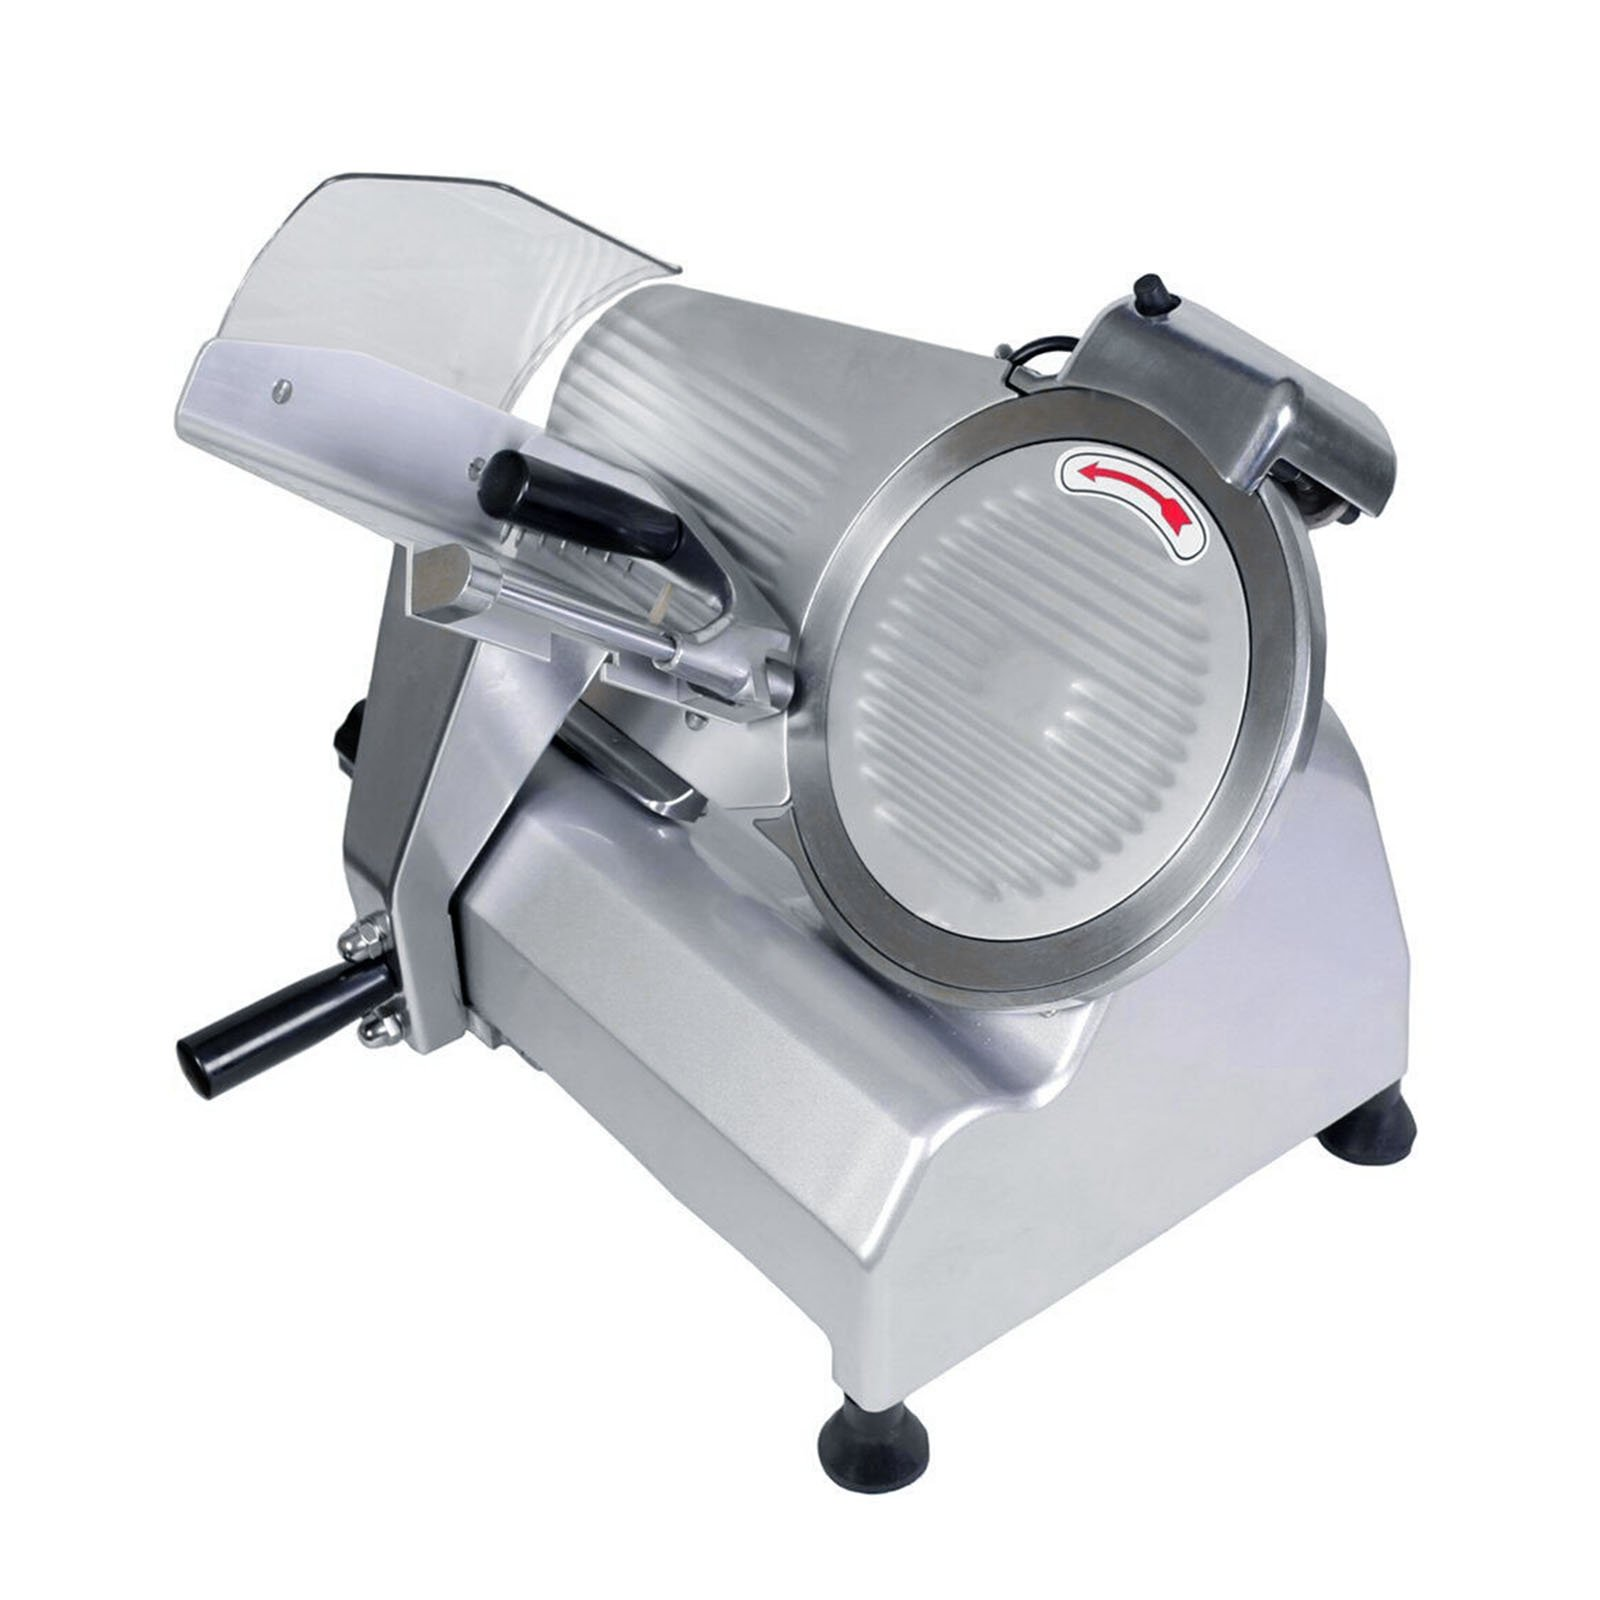 FoodKing Meat Slicer Electric Food Slicer Commercial Deli Slicer 240W 10 Inch Blade Heavy Duty for Meat Chopper Butcher Cutter (10 Inch)